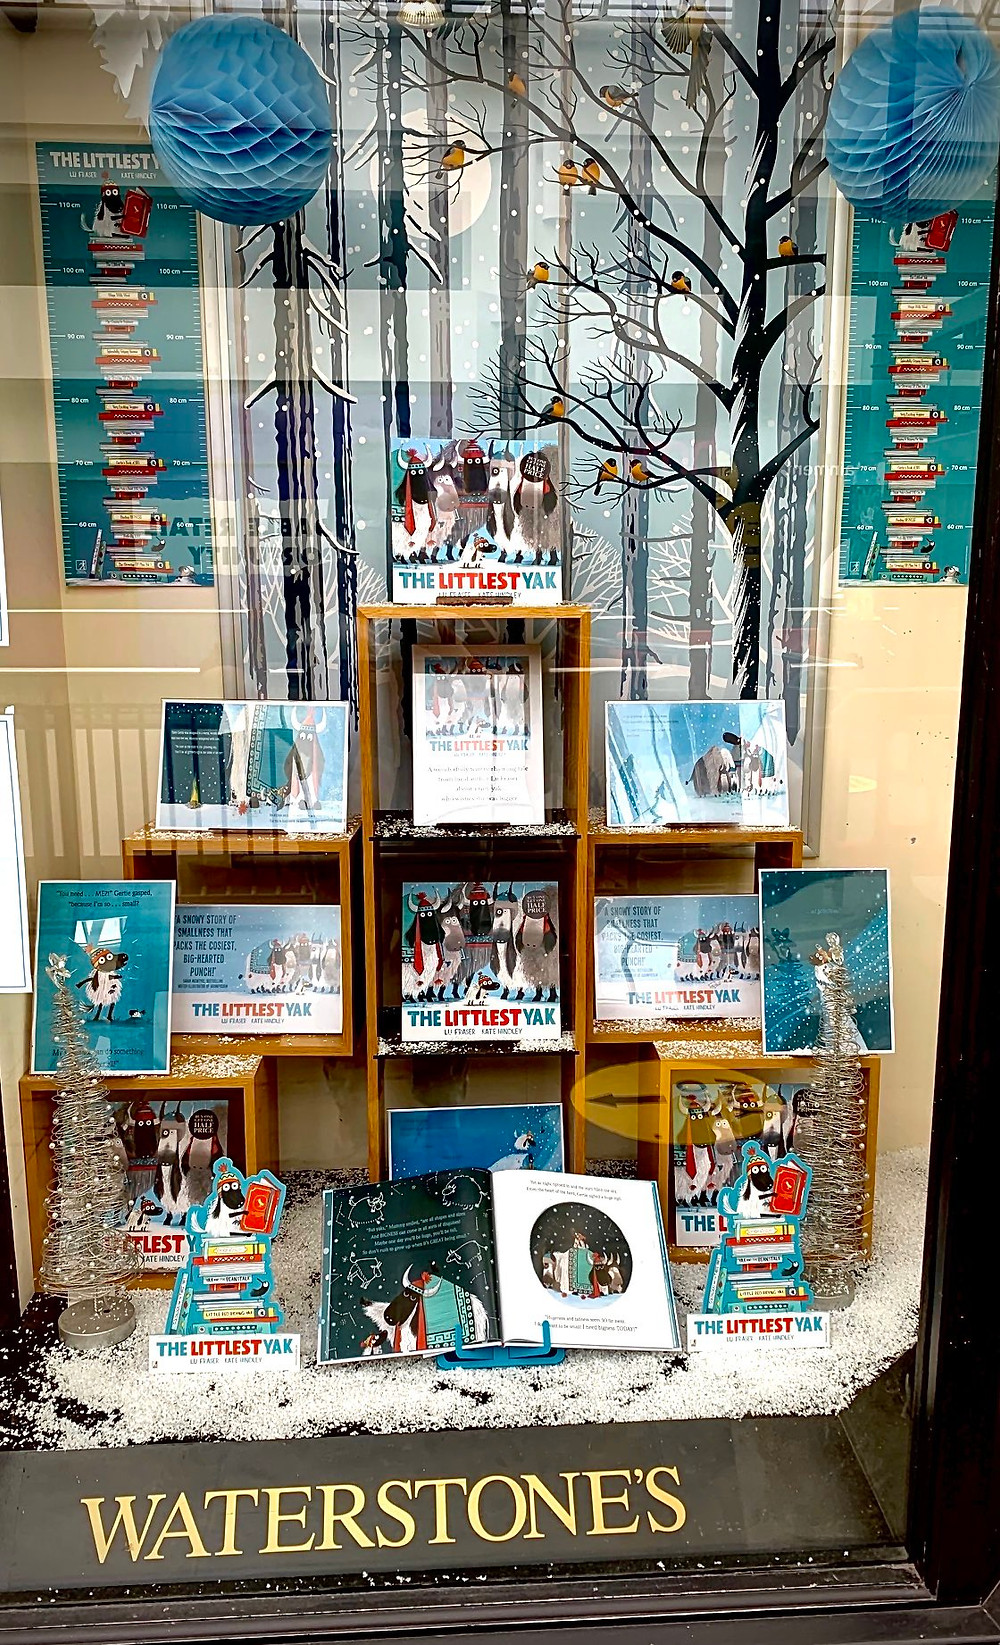 A branch of Waterstones with a window display of The Littlest Yak by Lu Fraser and Kate Hindley